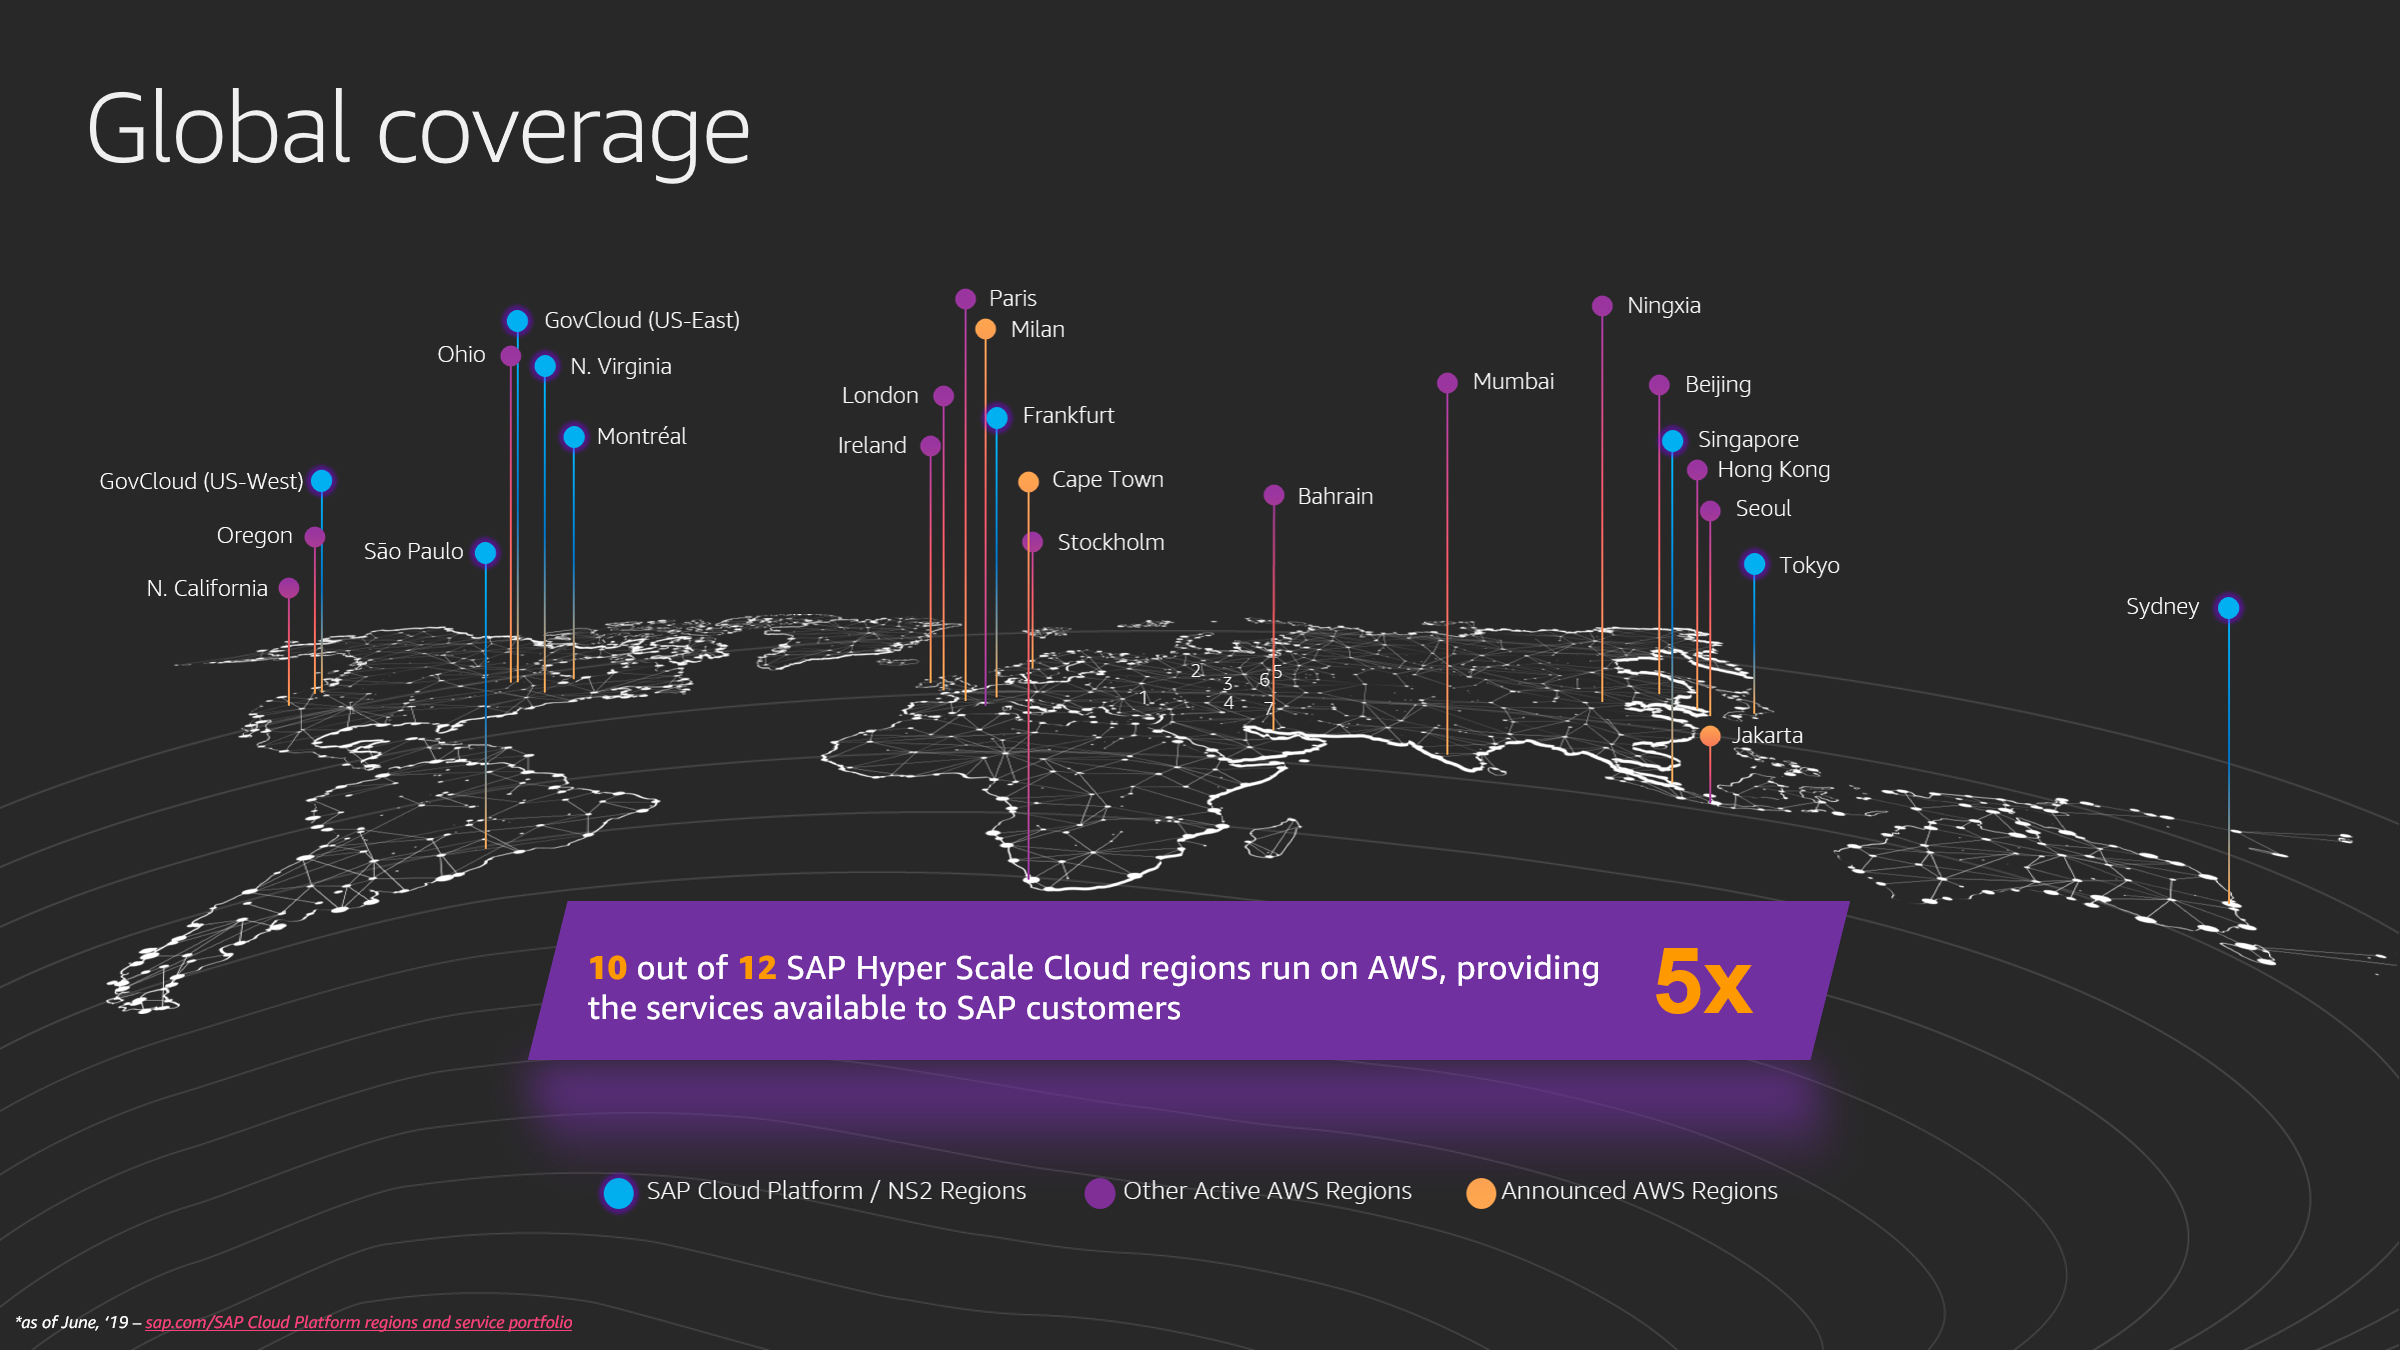 Image showing global coverage of AWS regions. 10 out of 12 SAP Hyperscale Cloud regions run on AWS, providing 5 times the services available to SAP customers.